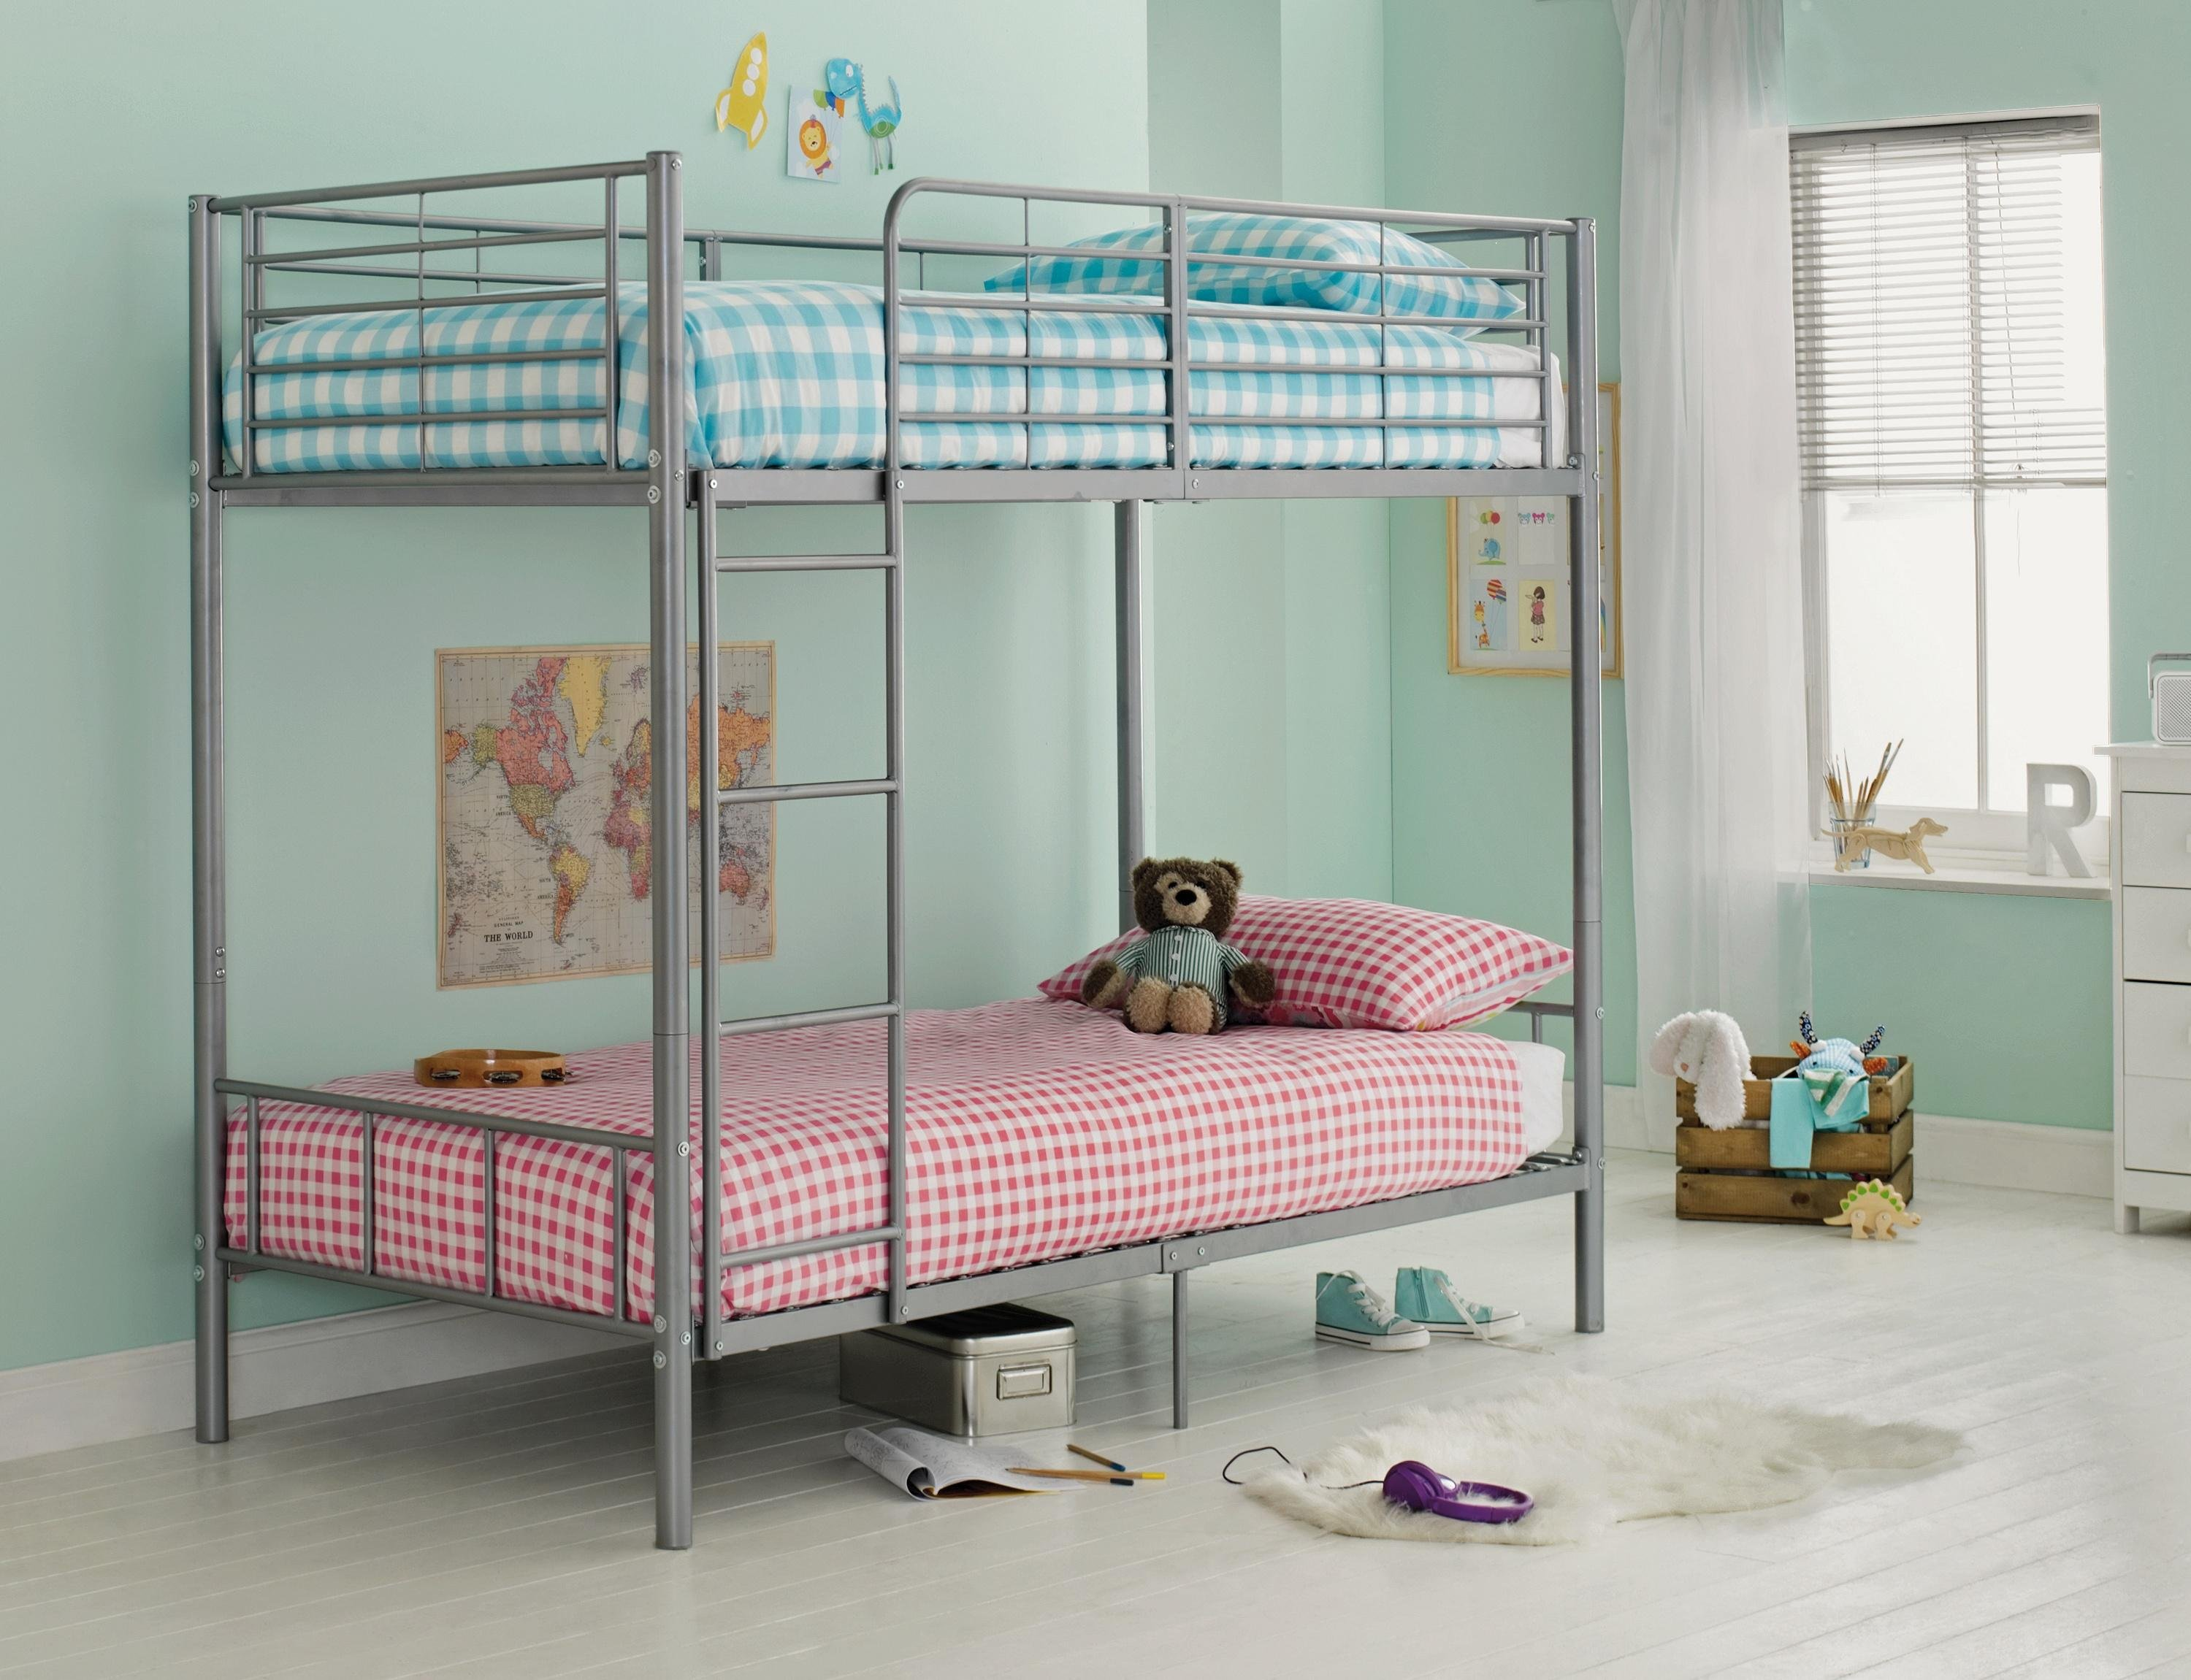 maddison-single-bunk-bed-frame-silver